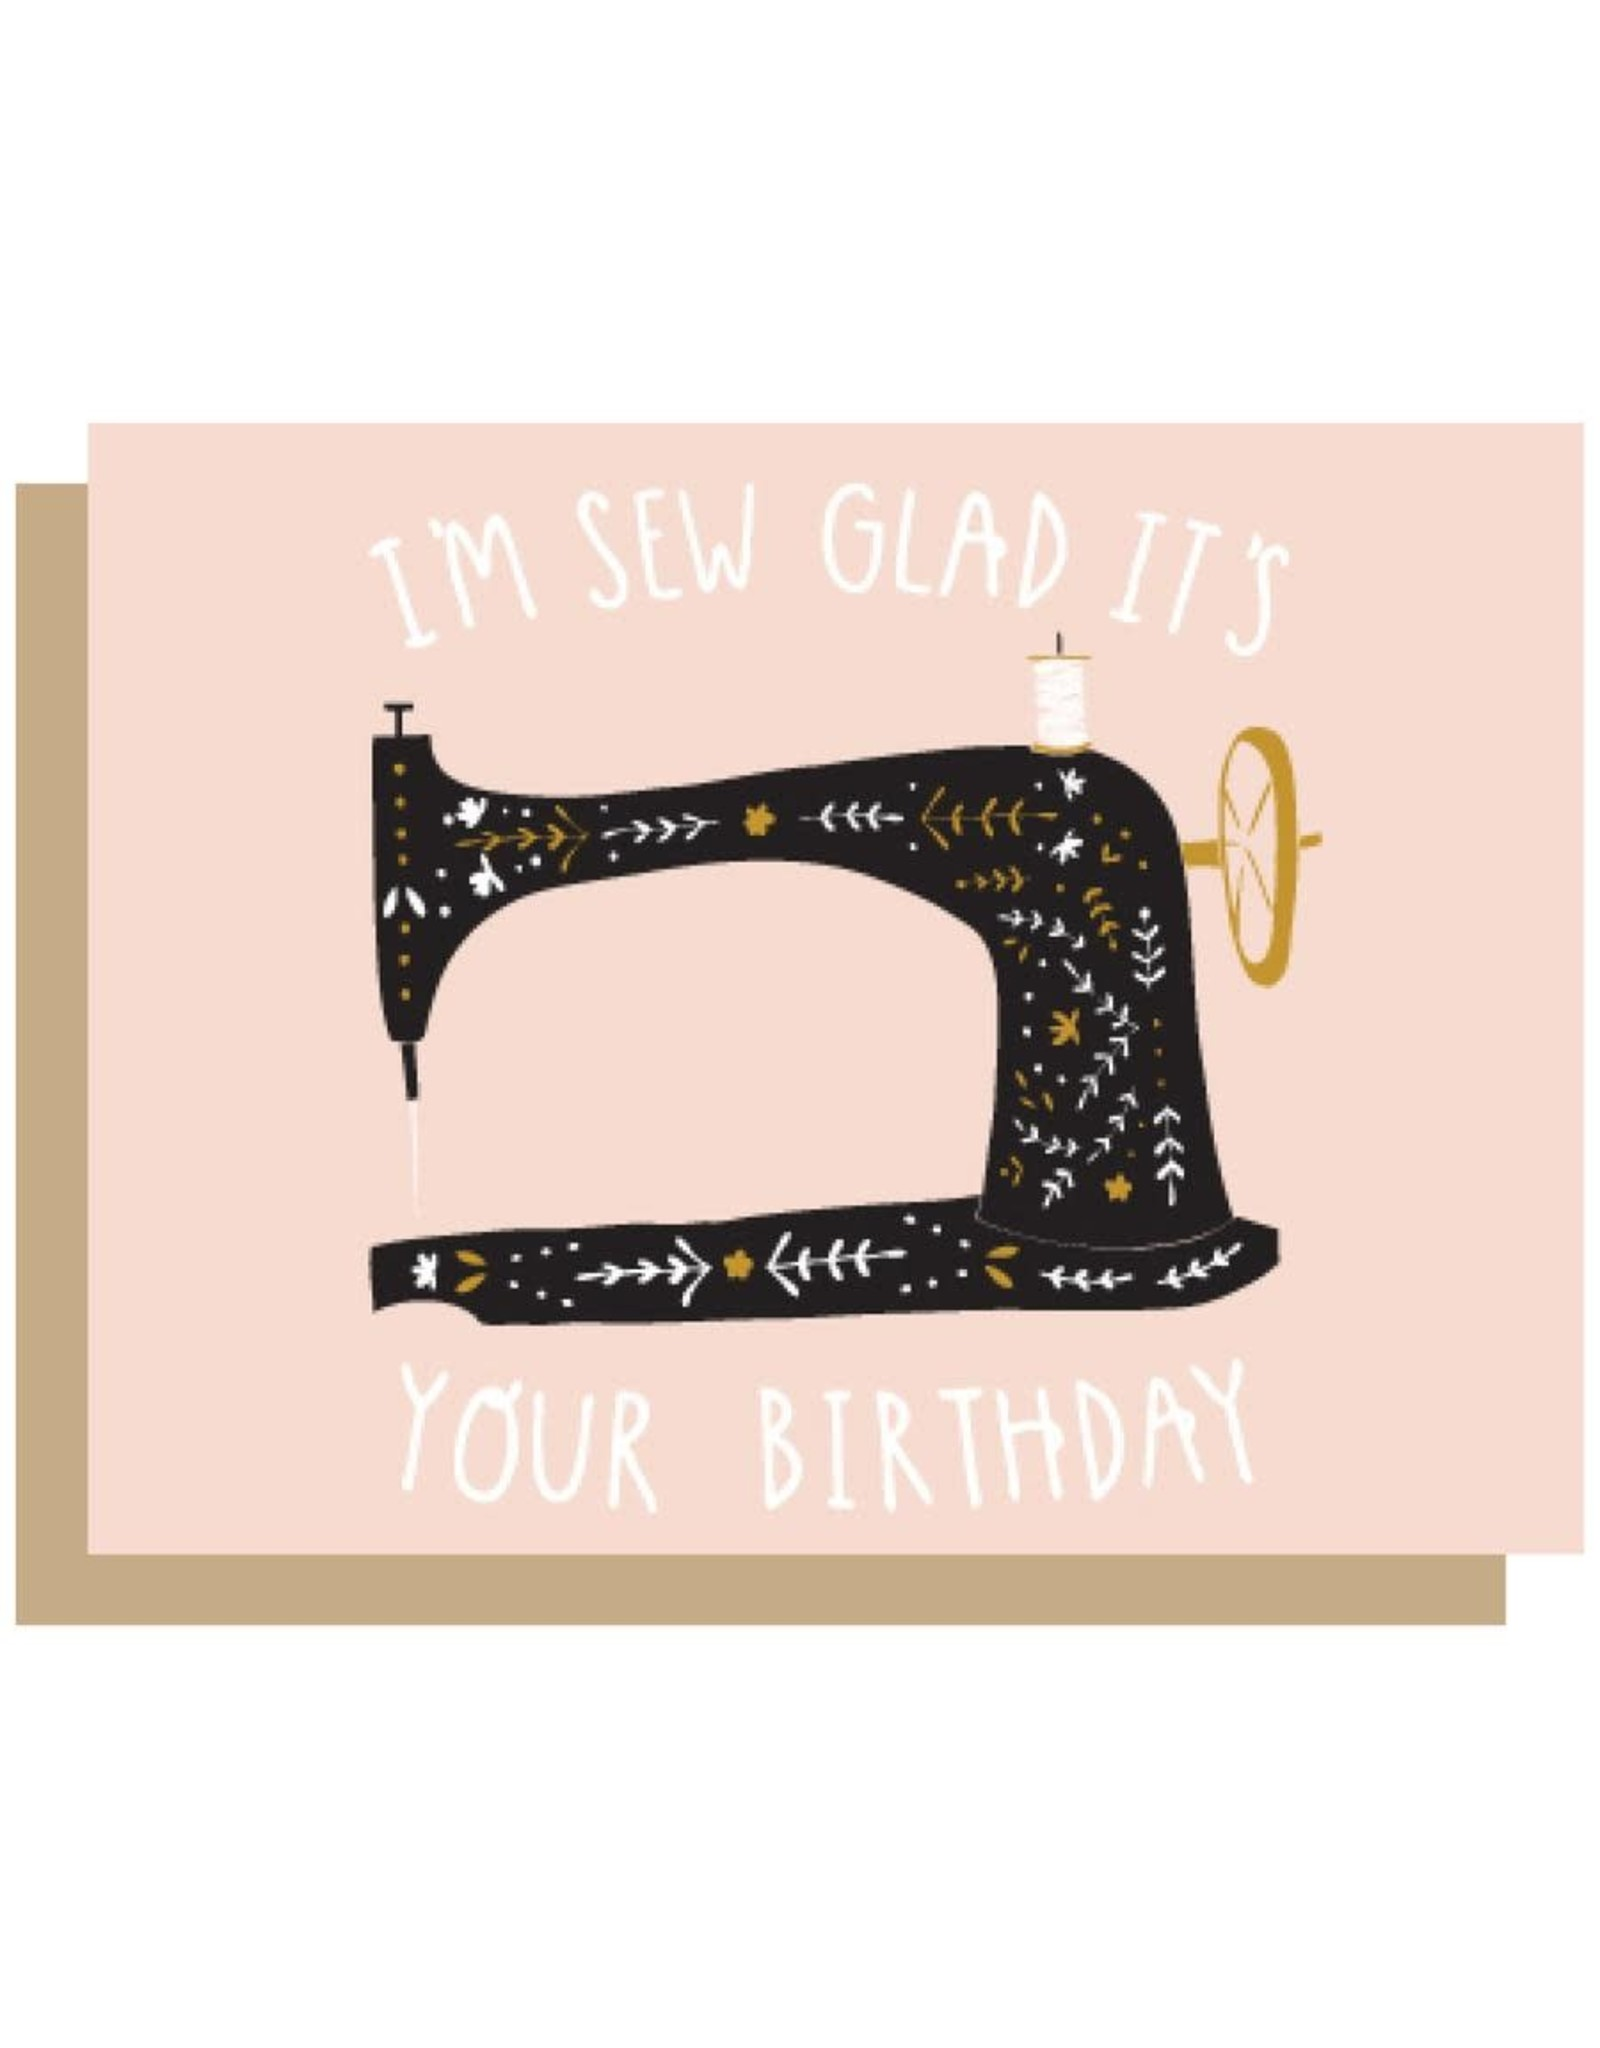 Gingiber Sew Glad Birthday Card